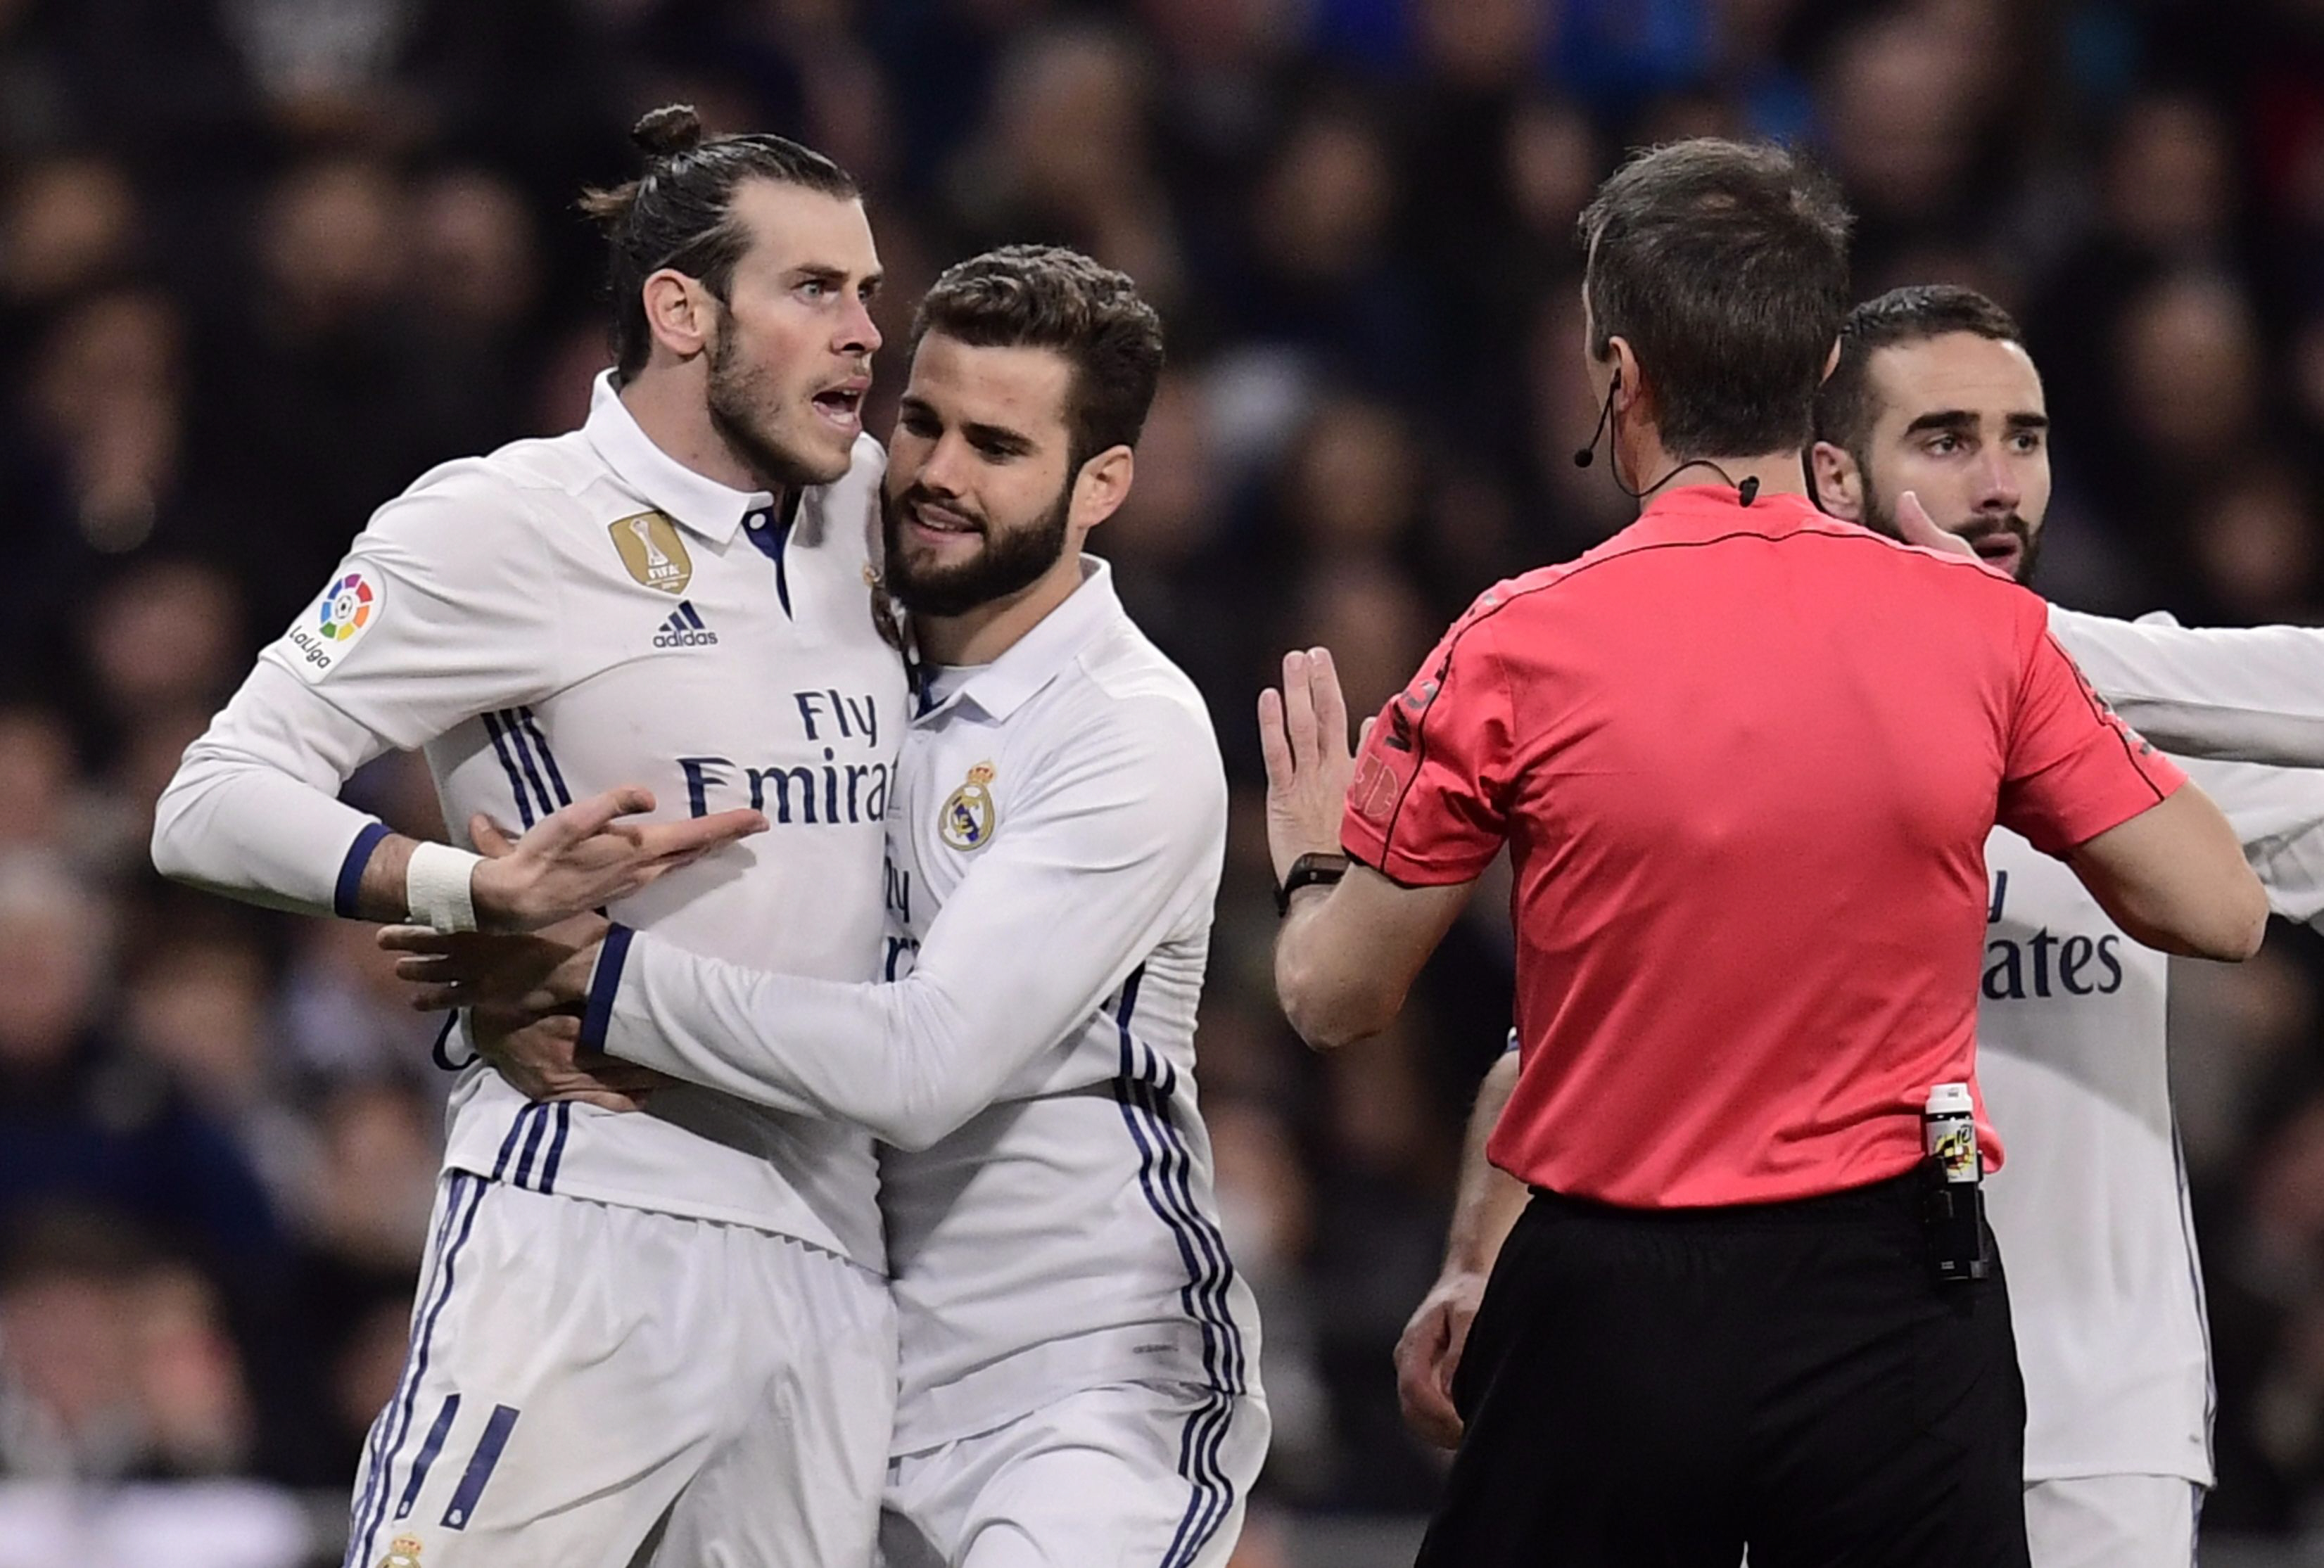 real madrid 039 s forward gareth bale l argues with the referee at the santiago bernabeu stadium in madrid on march 1 2017 photo afp